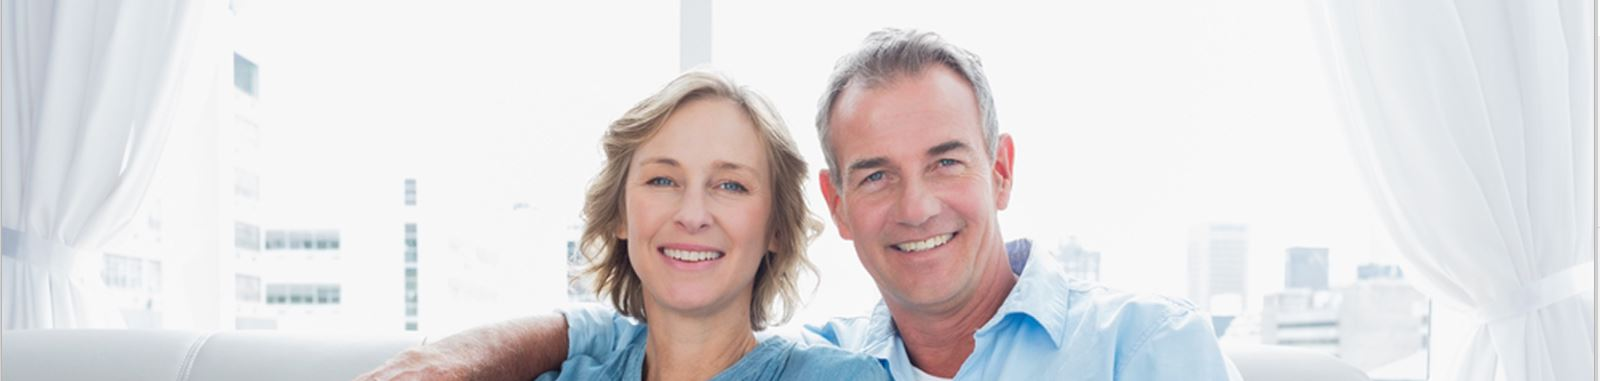 Smiling-Middle-aged-Couple2.jpg